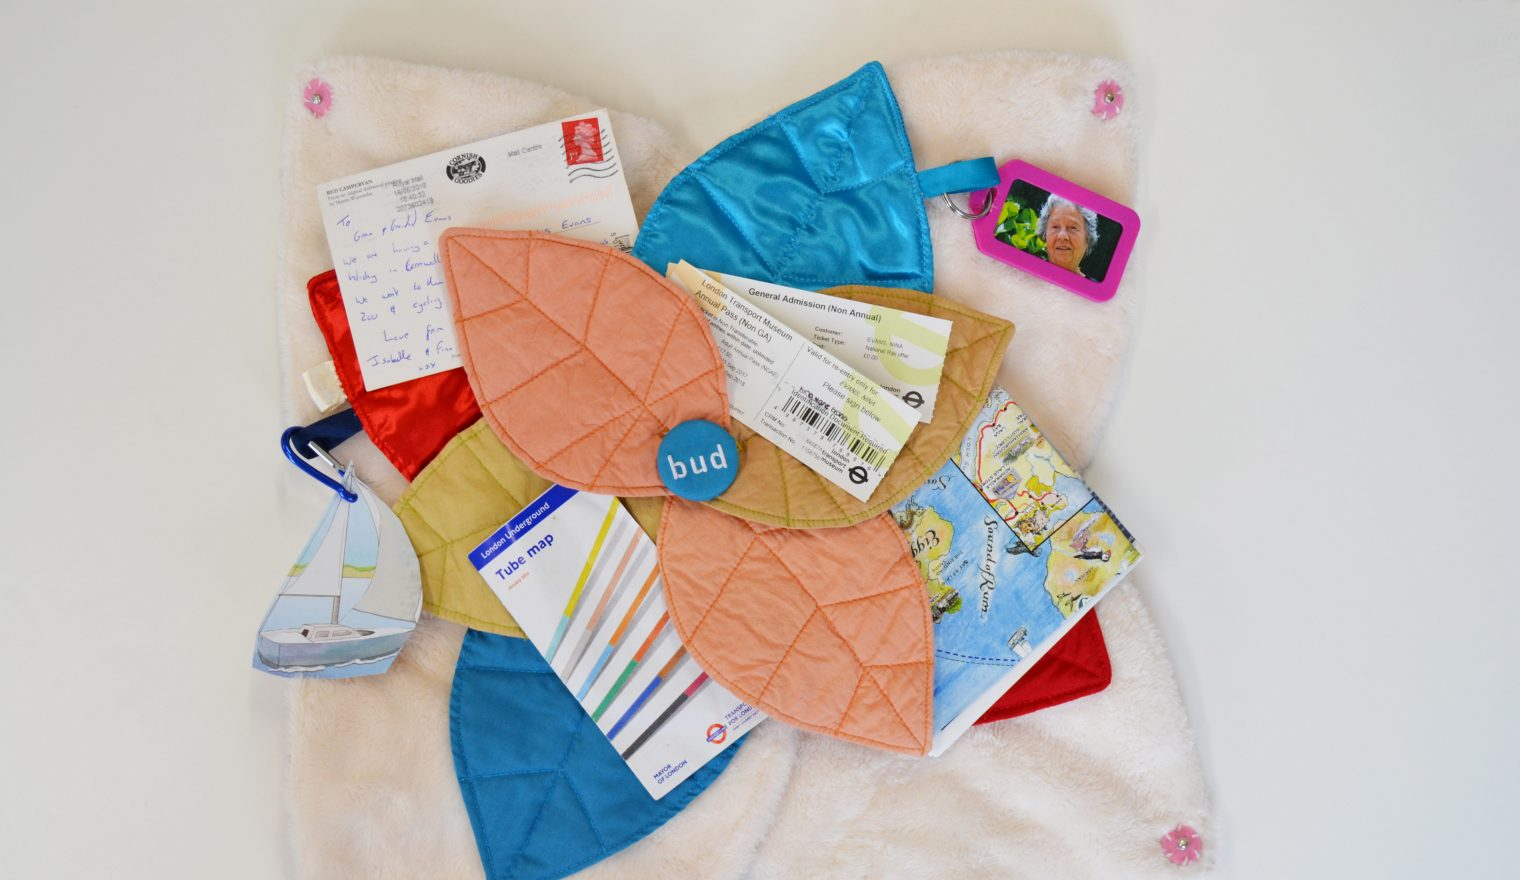 An open Bud sensory cushion holding personal items relating to travelling